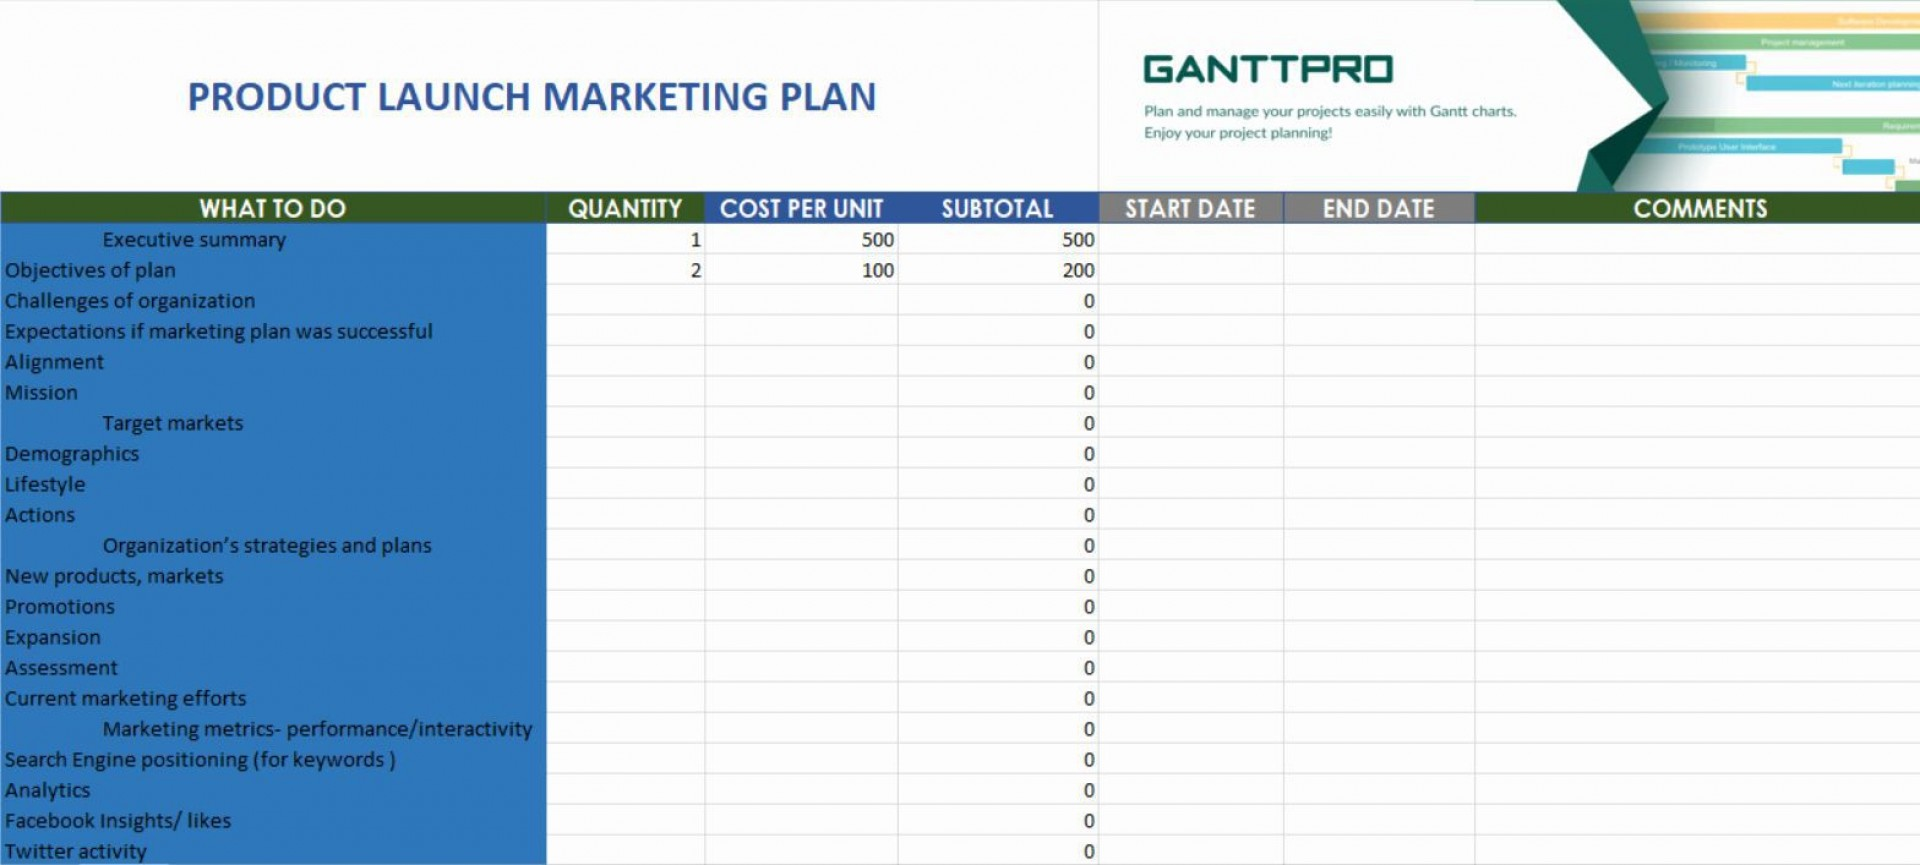 004 Singular Product Launch Marketing Plan Template Free Highest Clarity 1920